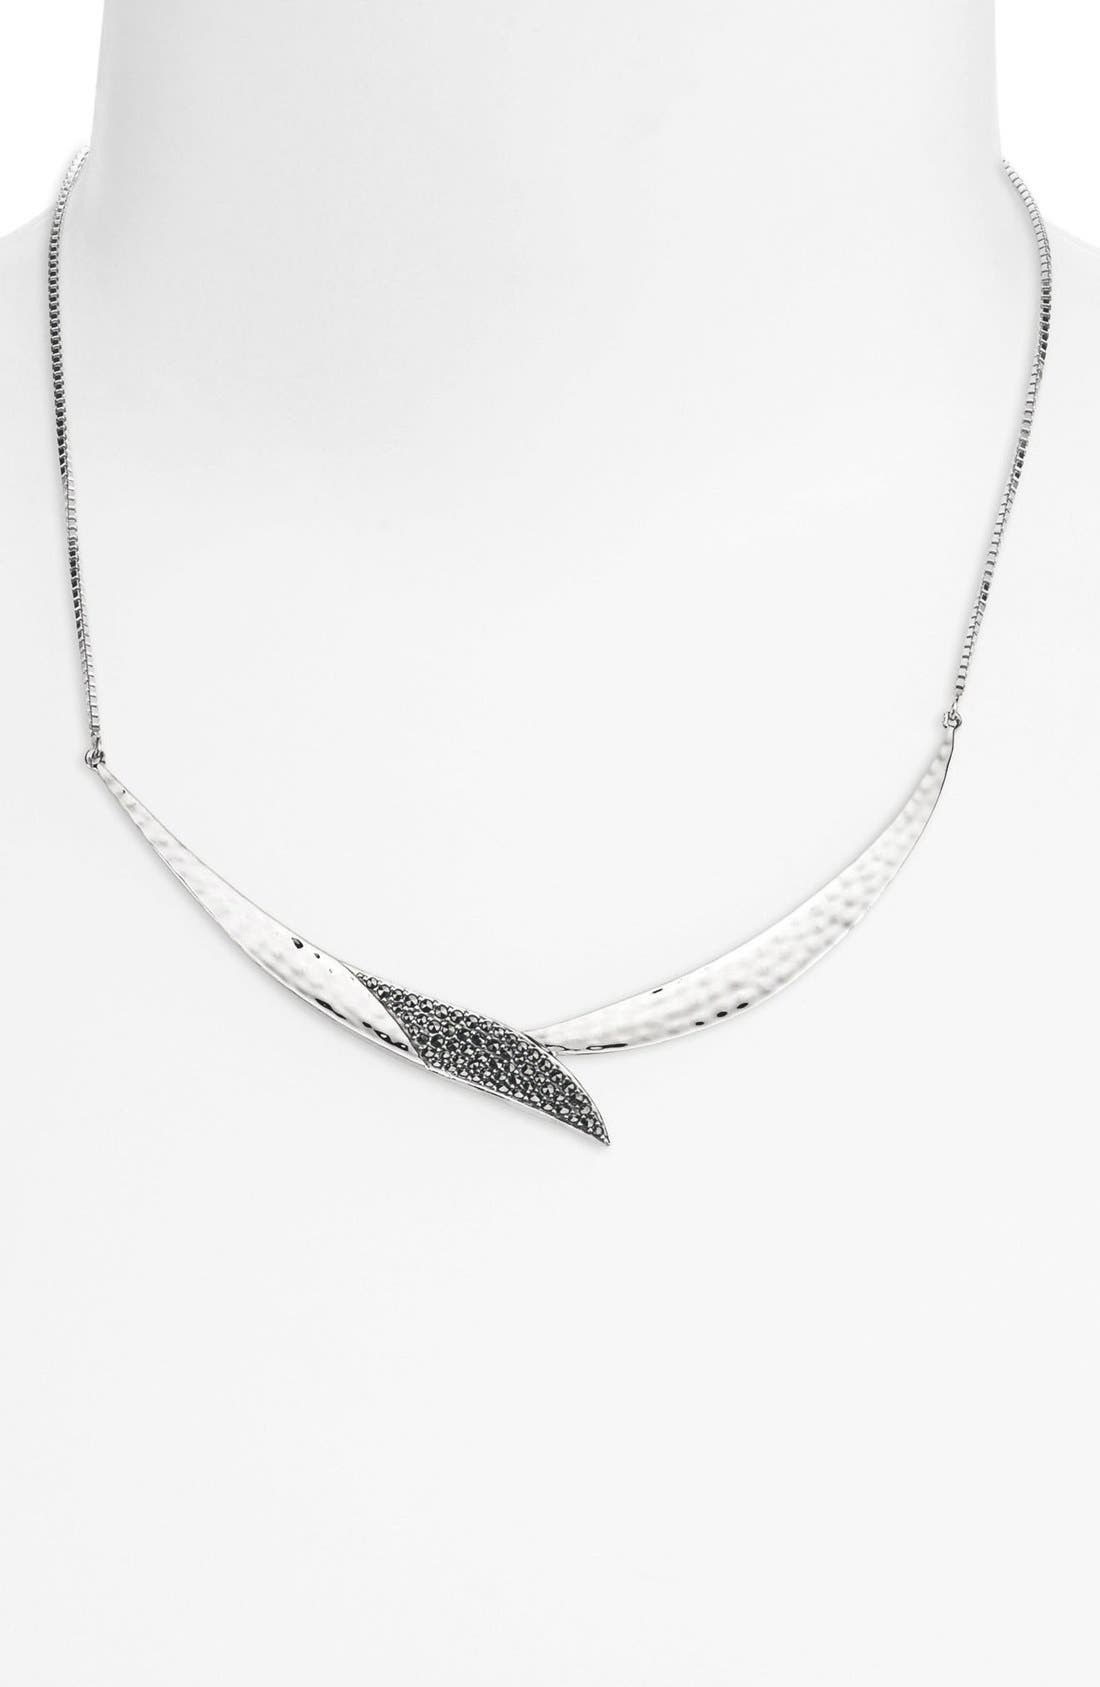 Alternate Image 1 Selected - Judith Jack 'Silver Rain' Collar Necklace (Nordstrom Exclusive)